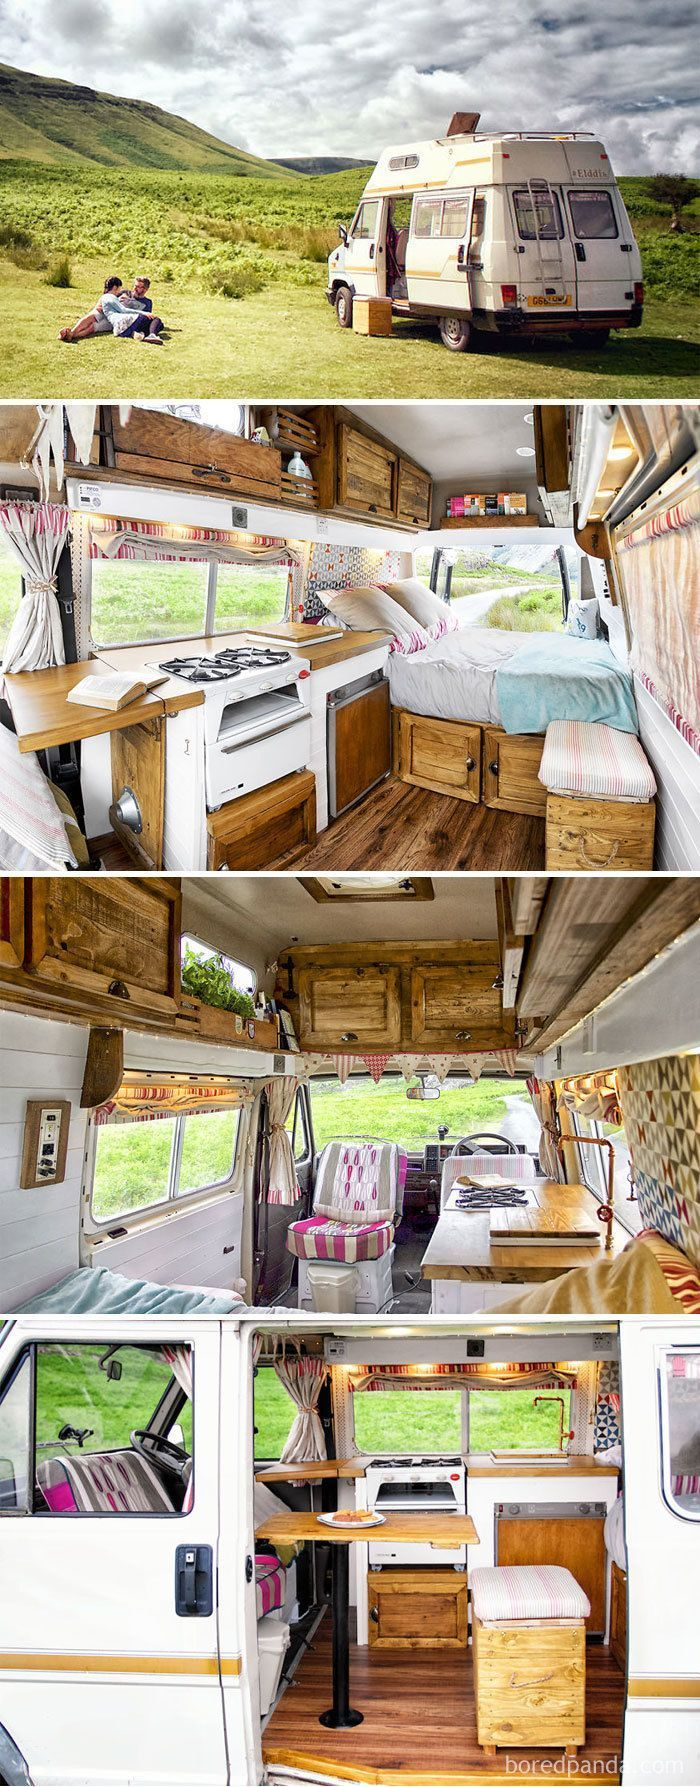 We Transformed This Camper Van In 6 Weeks With Only £1000 #camper #Transformed #Van #van life diy #van life diy how to build #van life diy ideas #van life diy interiors #van life diy projects #Weeks